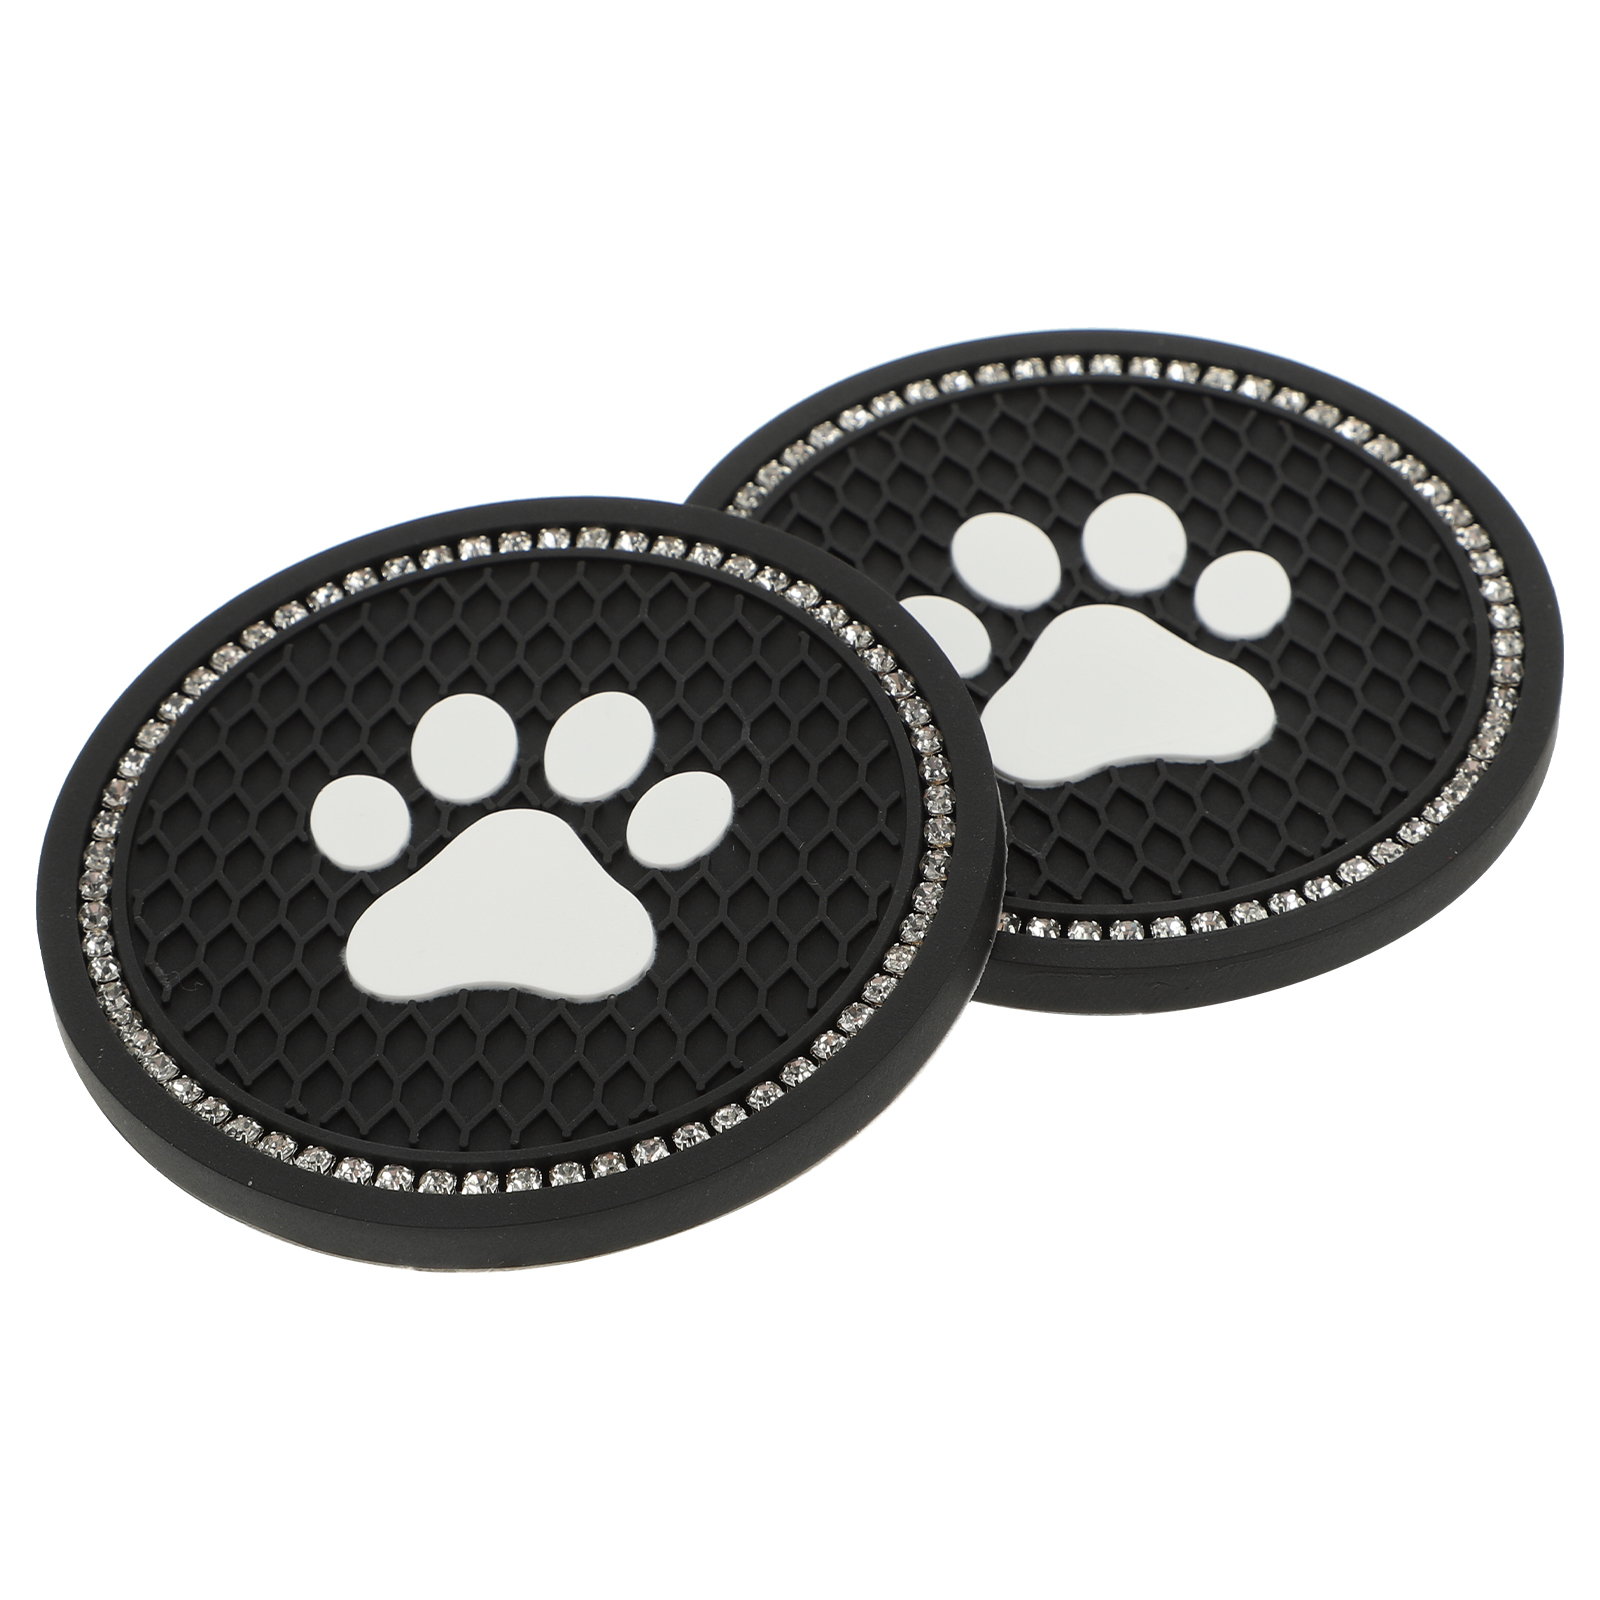 2 pcs Car Coaster Water Cup Bottle Holder Anti-slip Bling Paw Pad Mat Silica Gel For Interior Decoration Car Styling Accessories